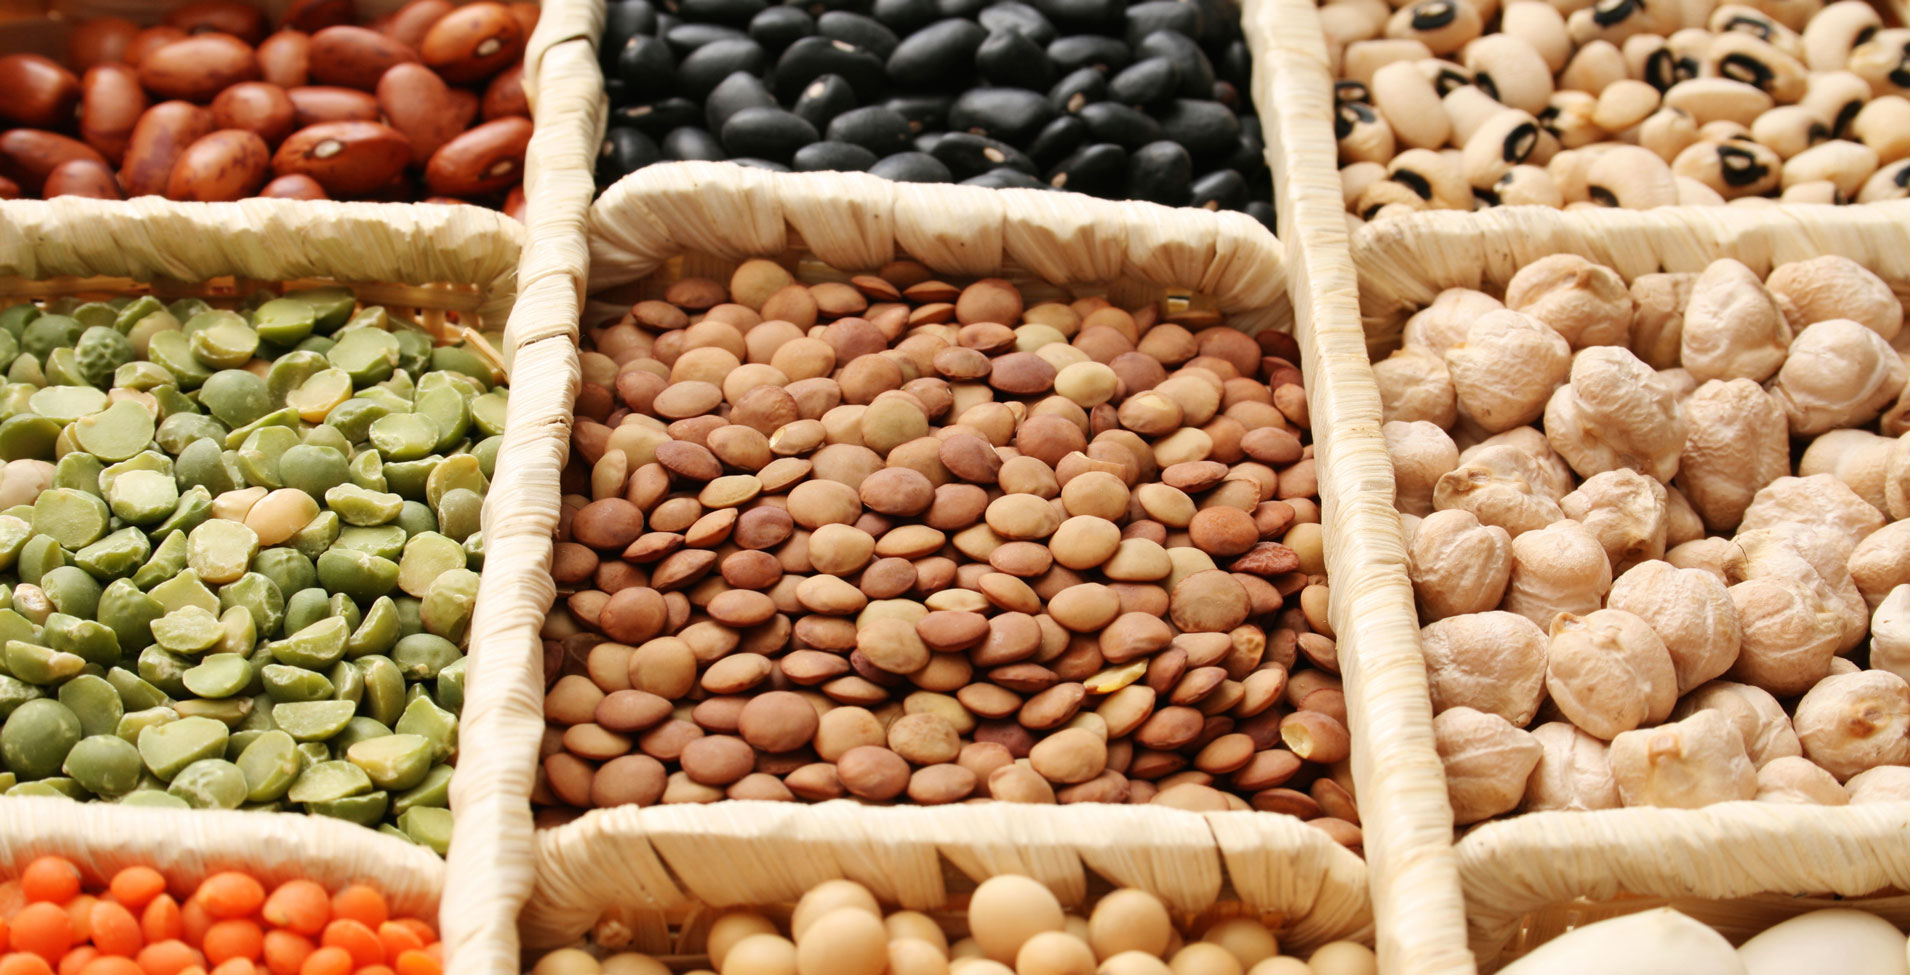 The Best Sources Of Protein For Vegetarians